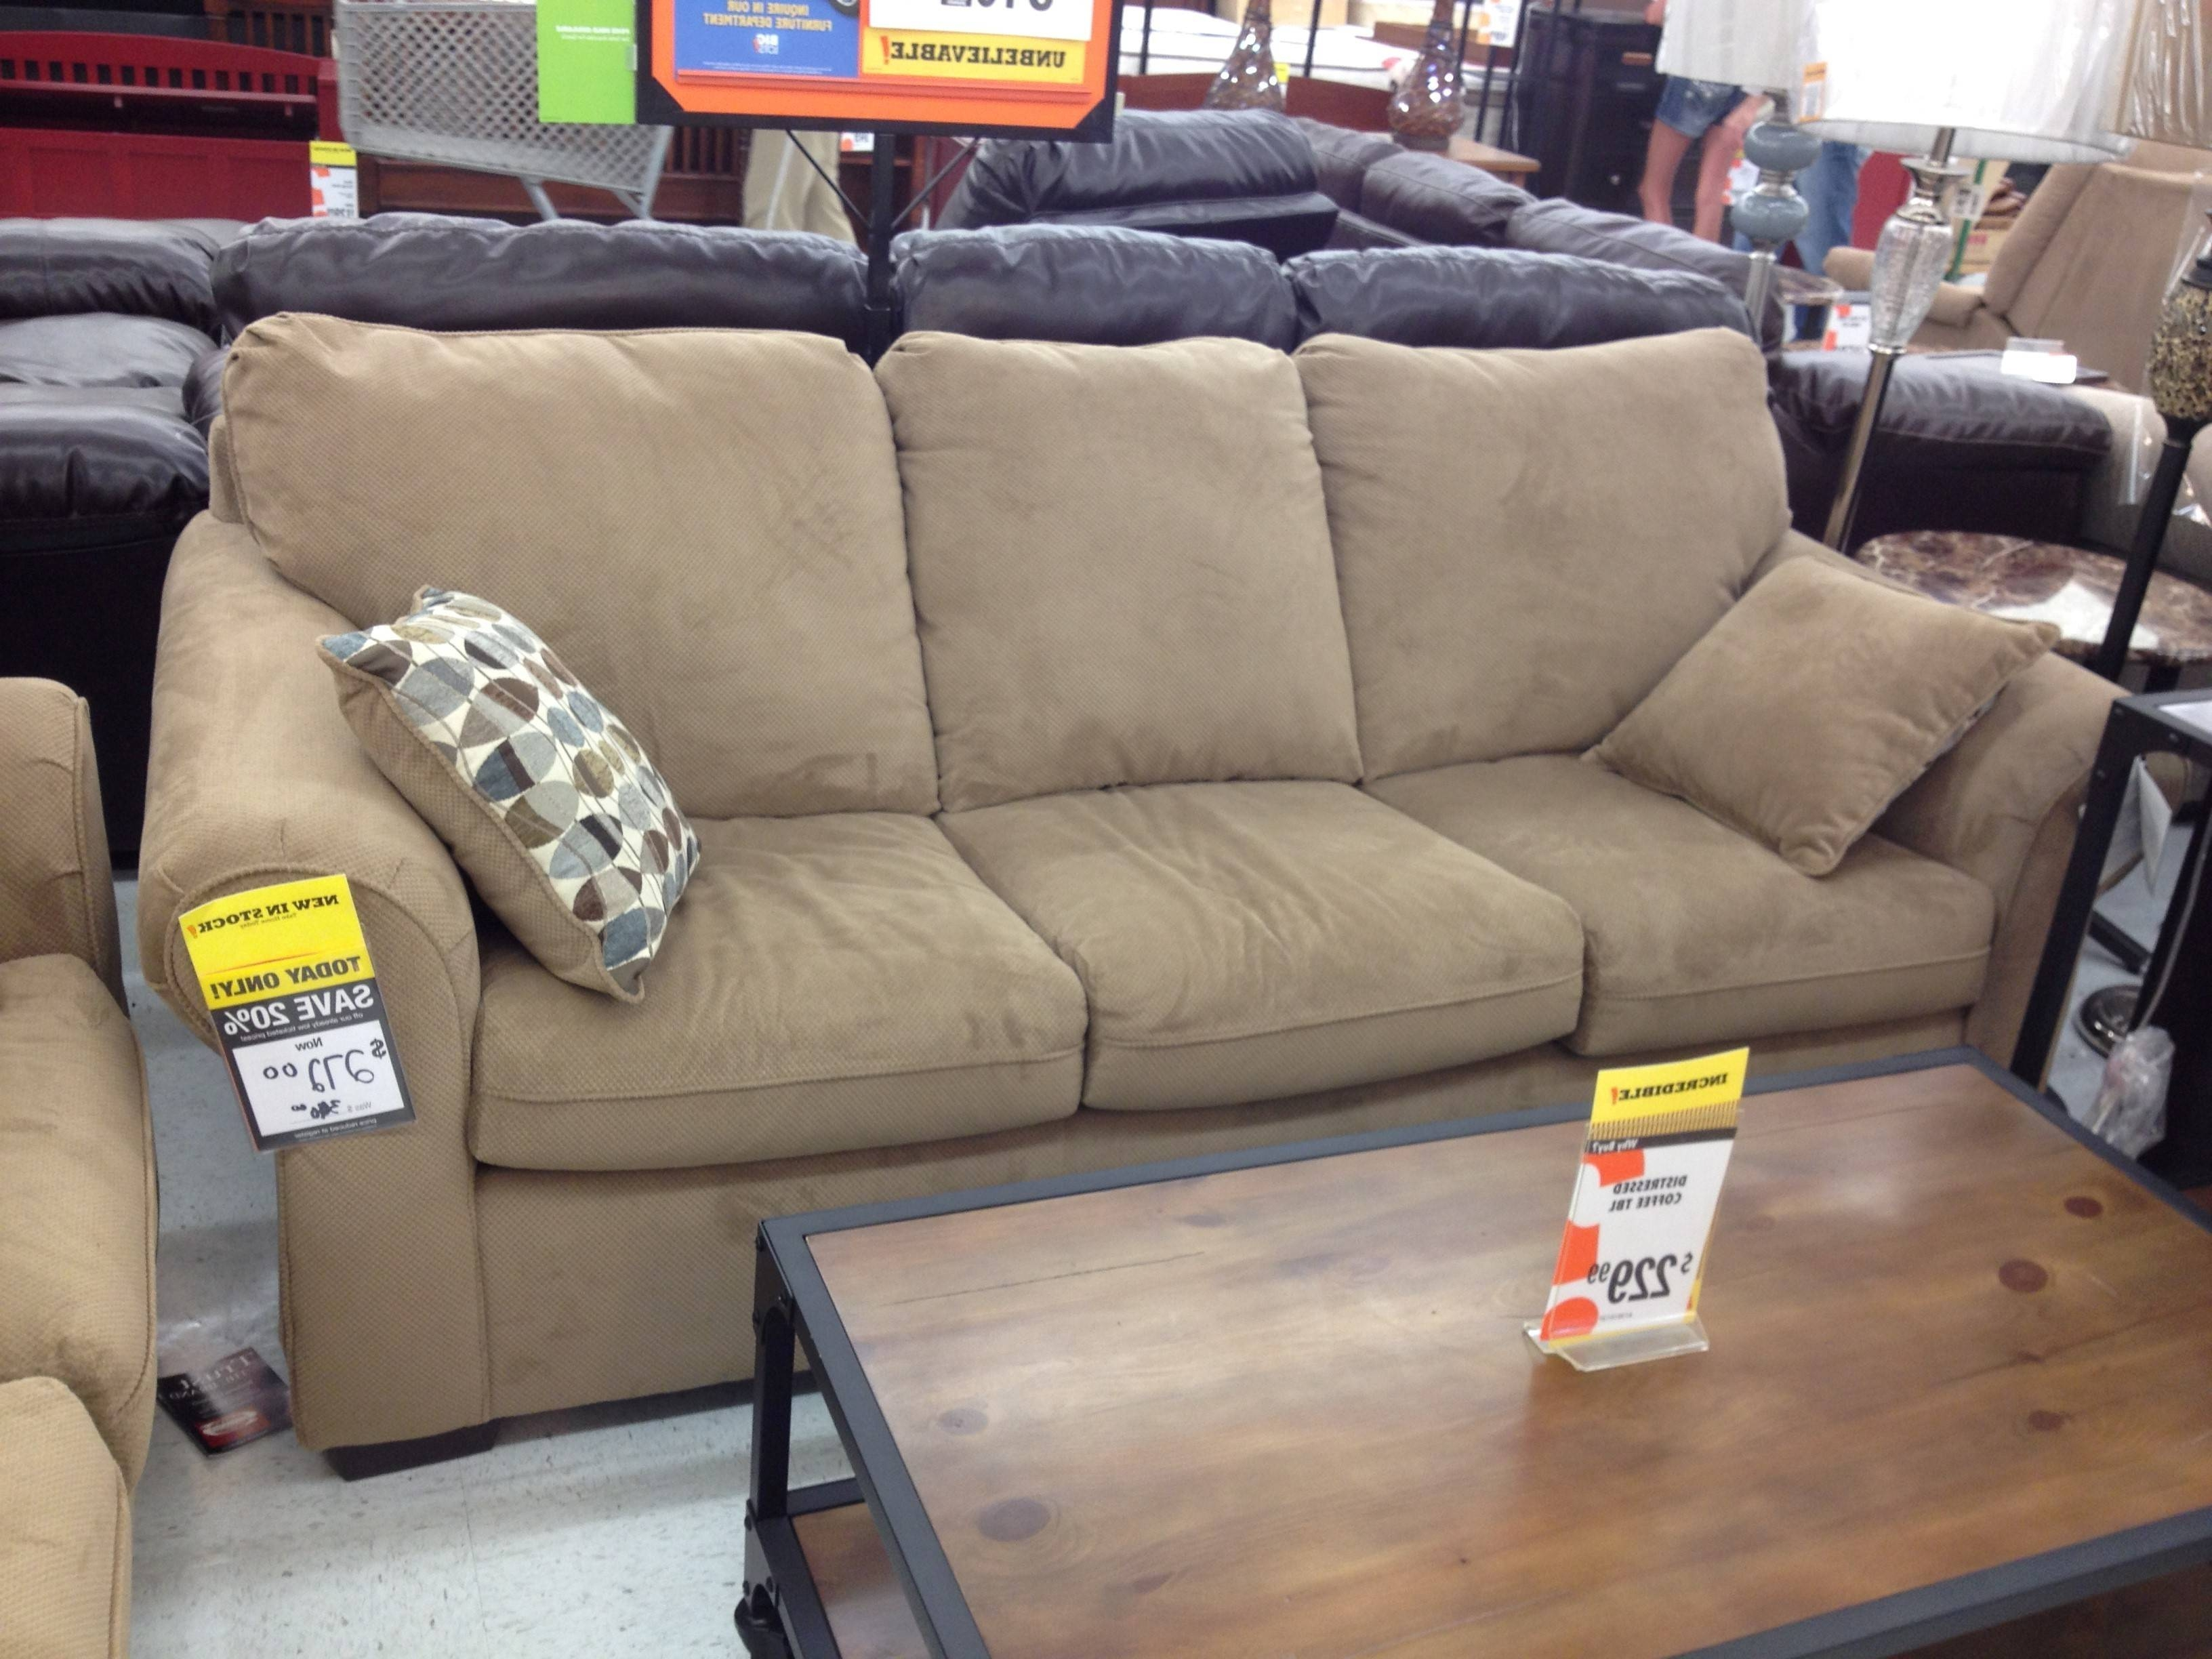 Furniture: Wayfair Couches | Kmart Furniture Sale | Big Lots pertaining to Big Lots Couches (Image 11 of 15)